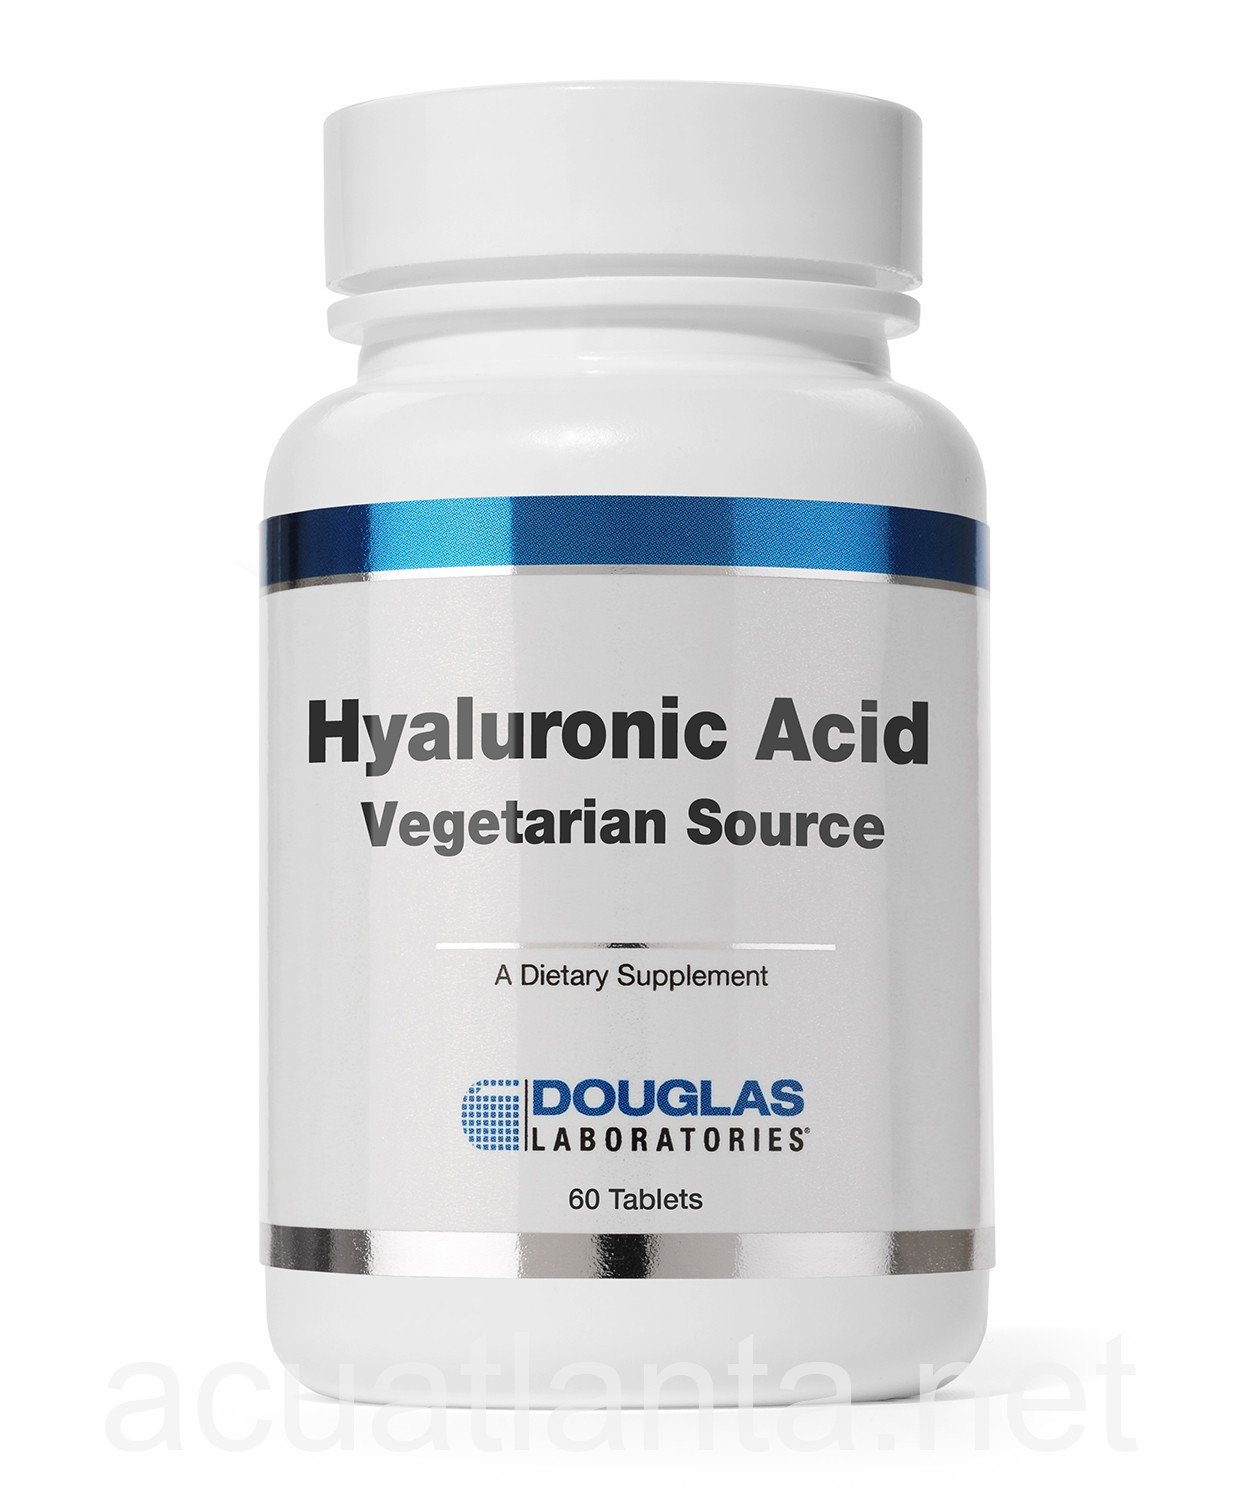 Are hyaluronic acid supplements safe